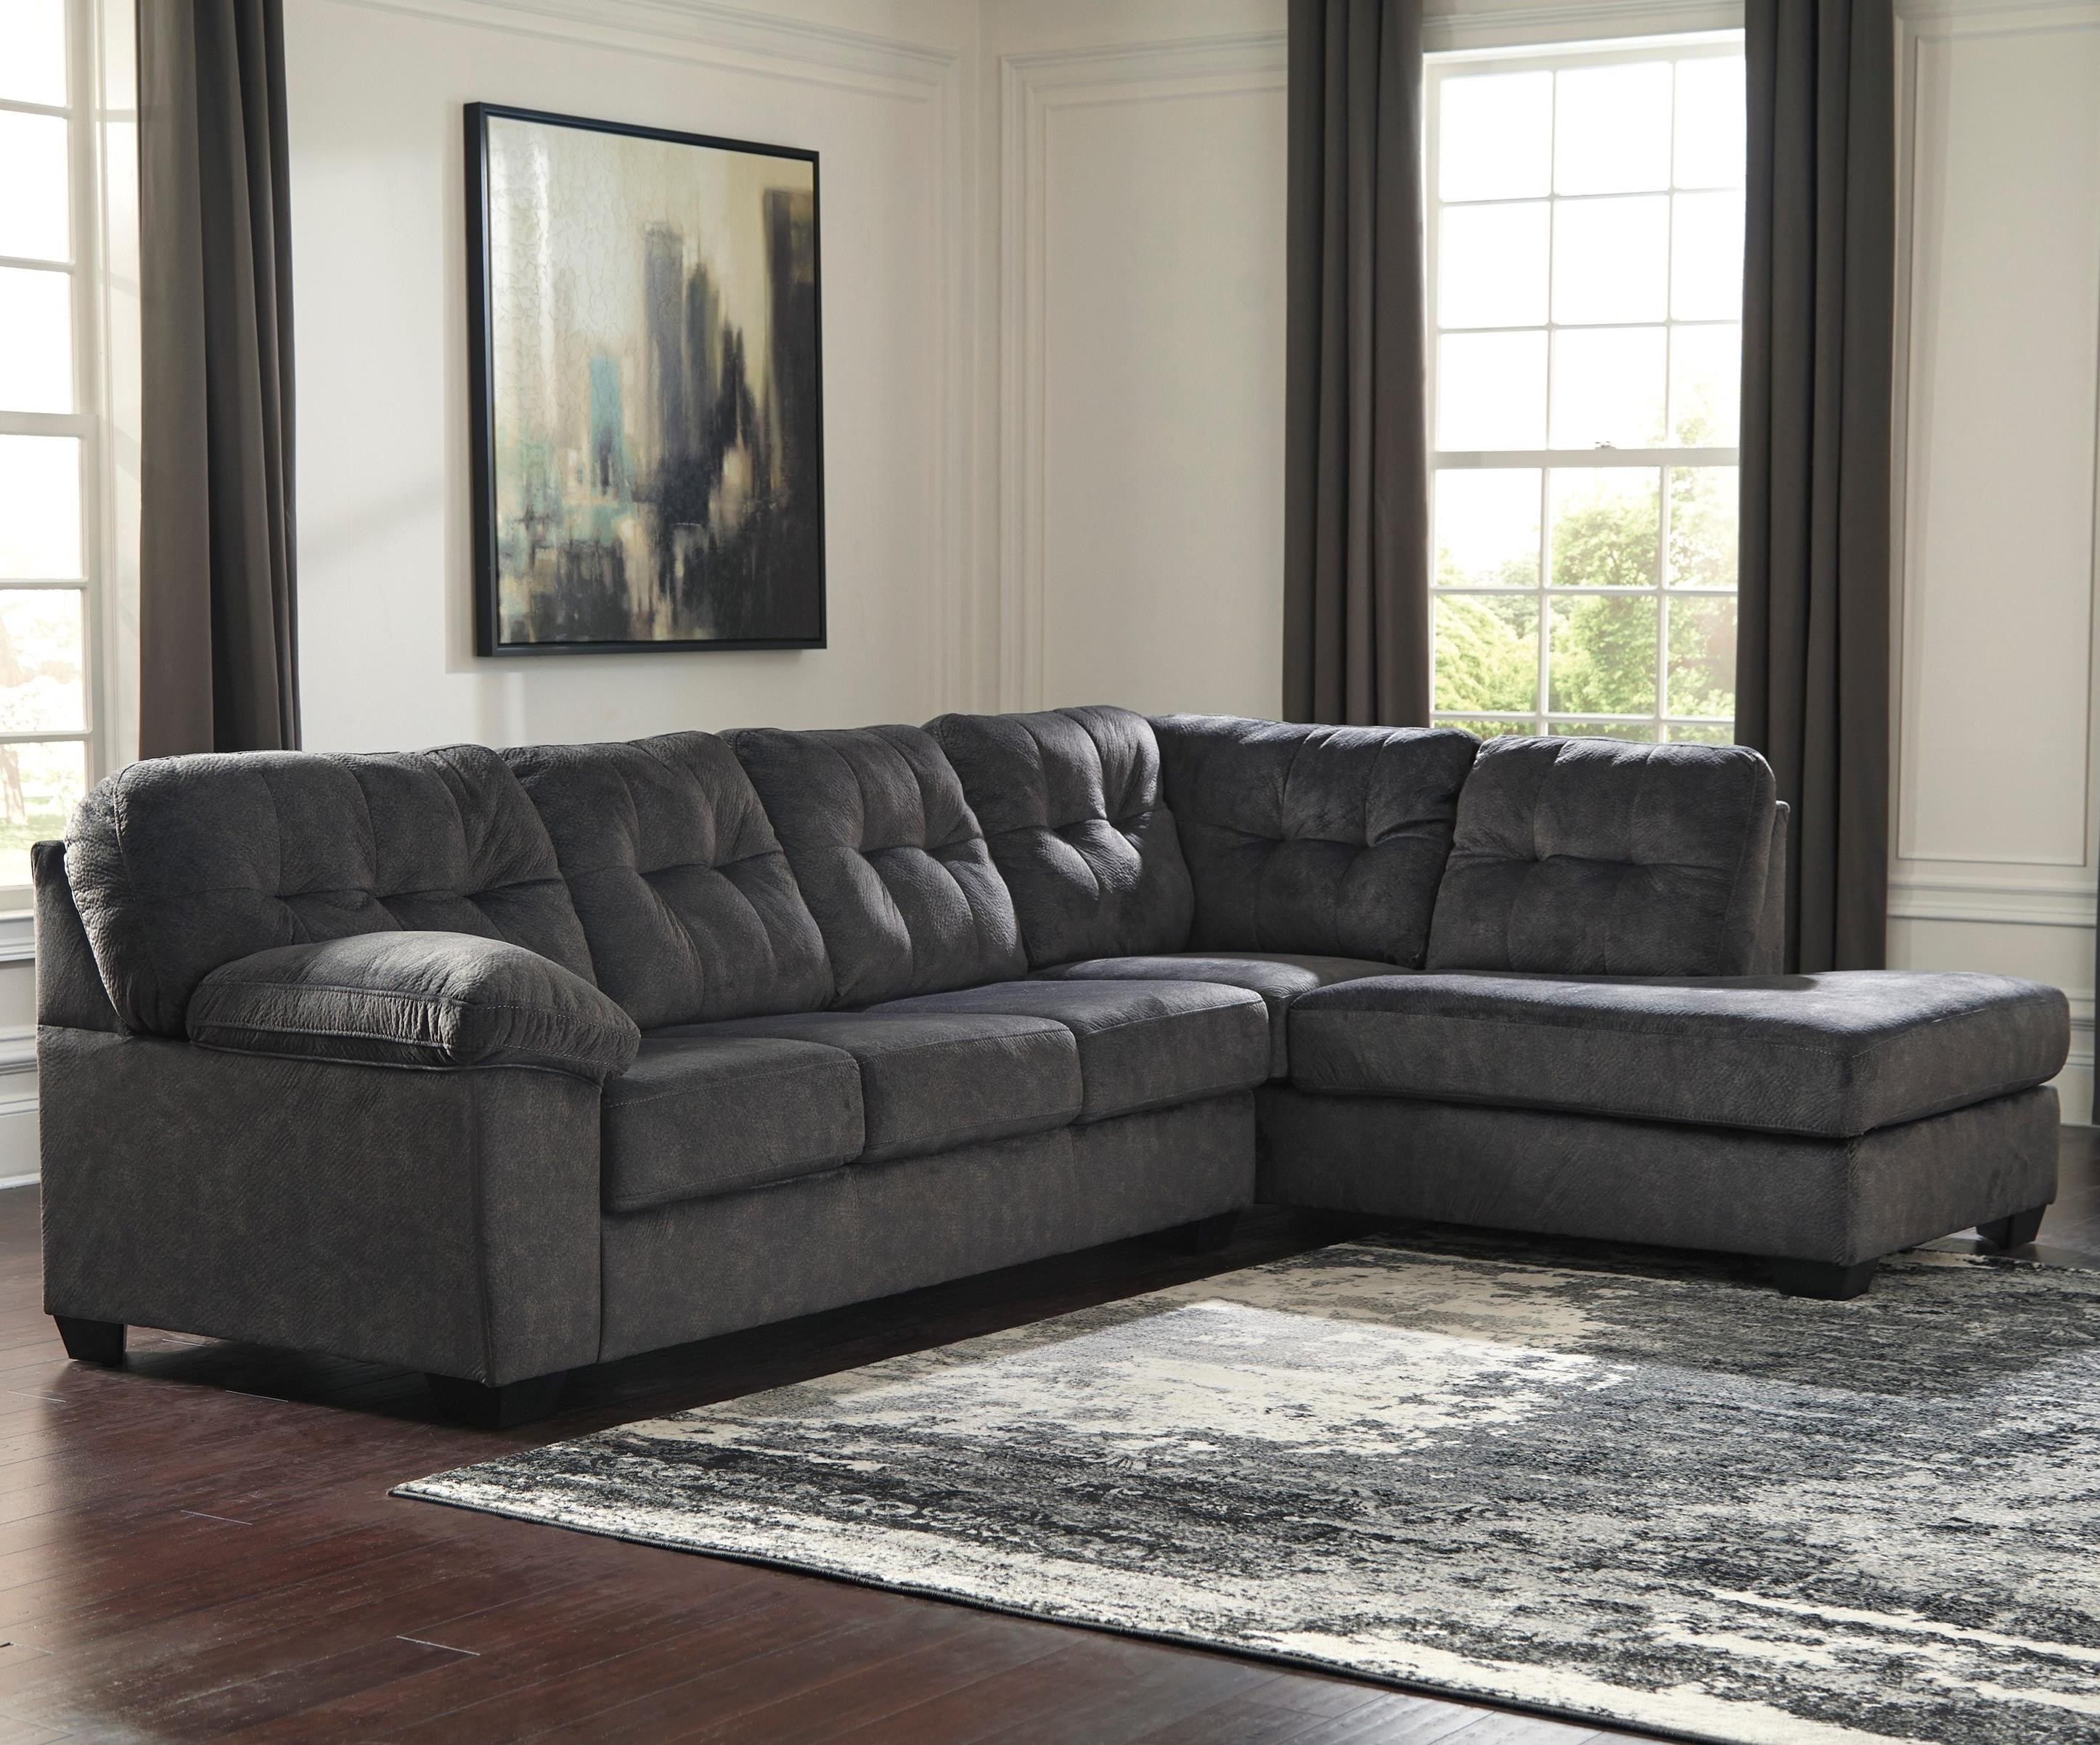 signature design by ashley accrington sectional with right chaise u0026 memory foam queen sleeper mattress household furniture sectional sofas